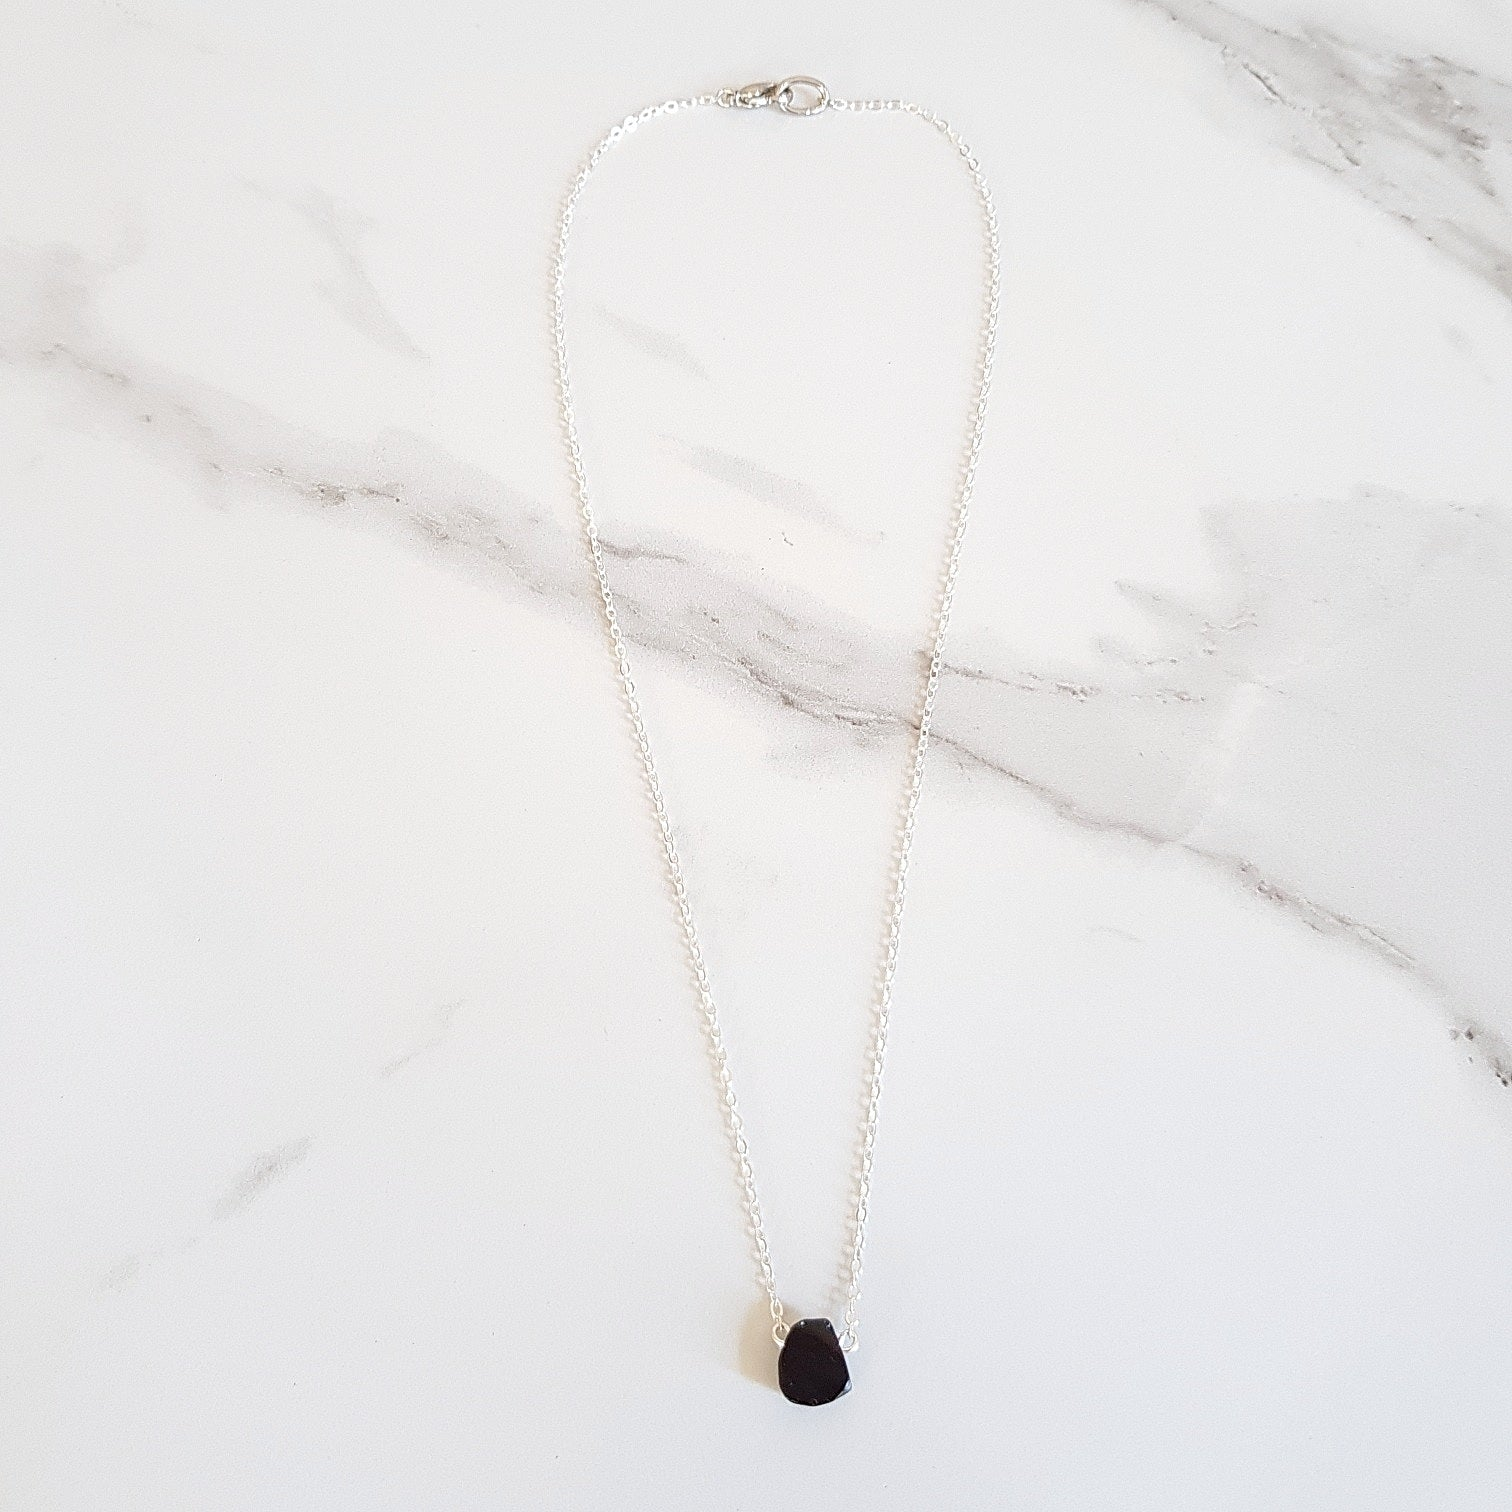 Shield Dainty Necklace - Black Obsidian